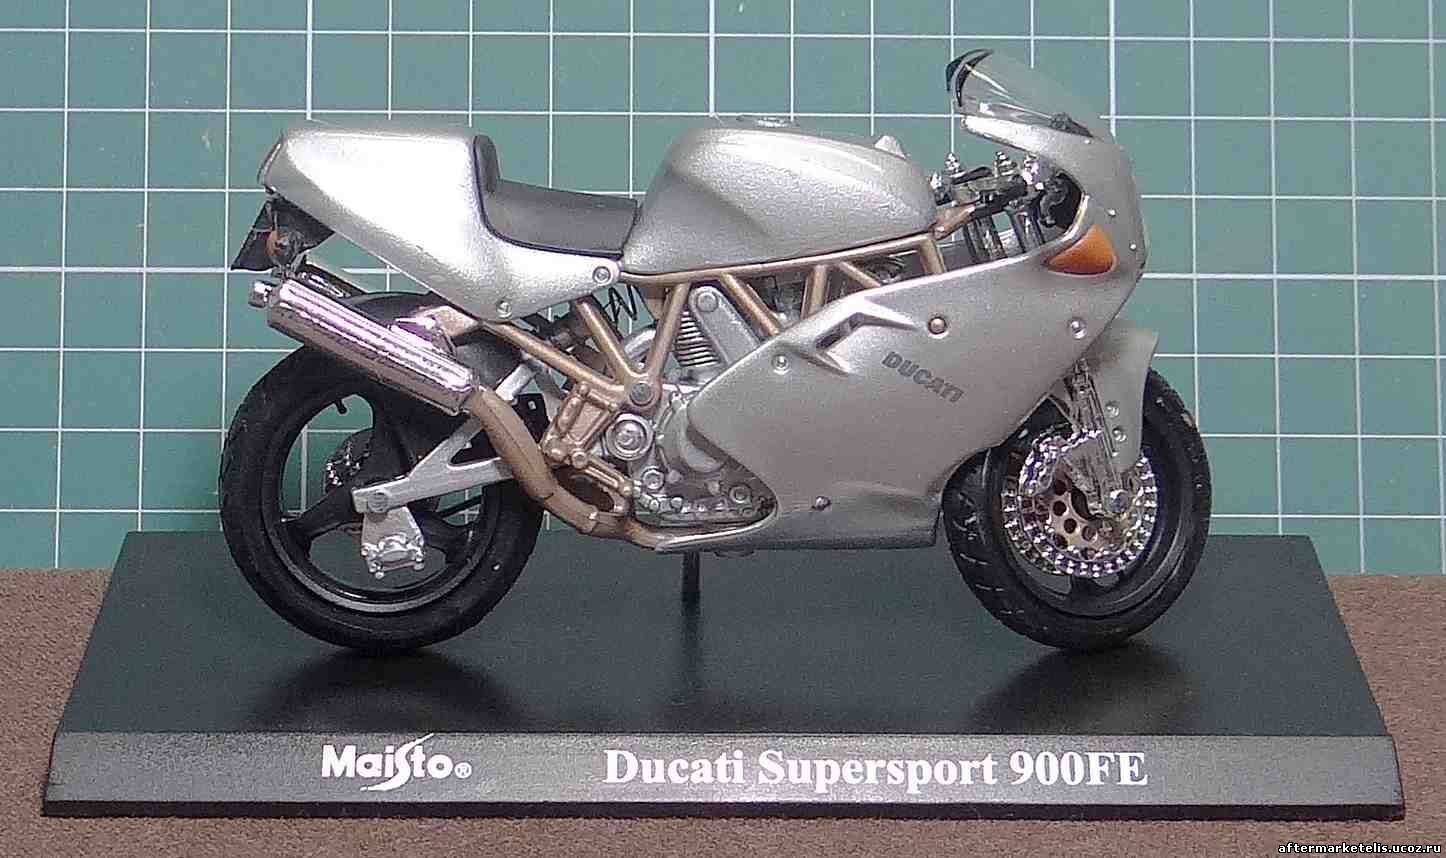 Ducati Supersport 900 FE Maisto